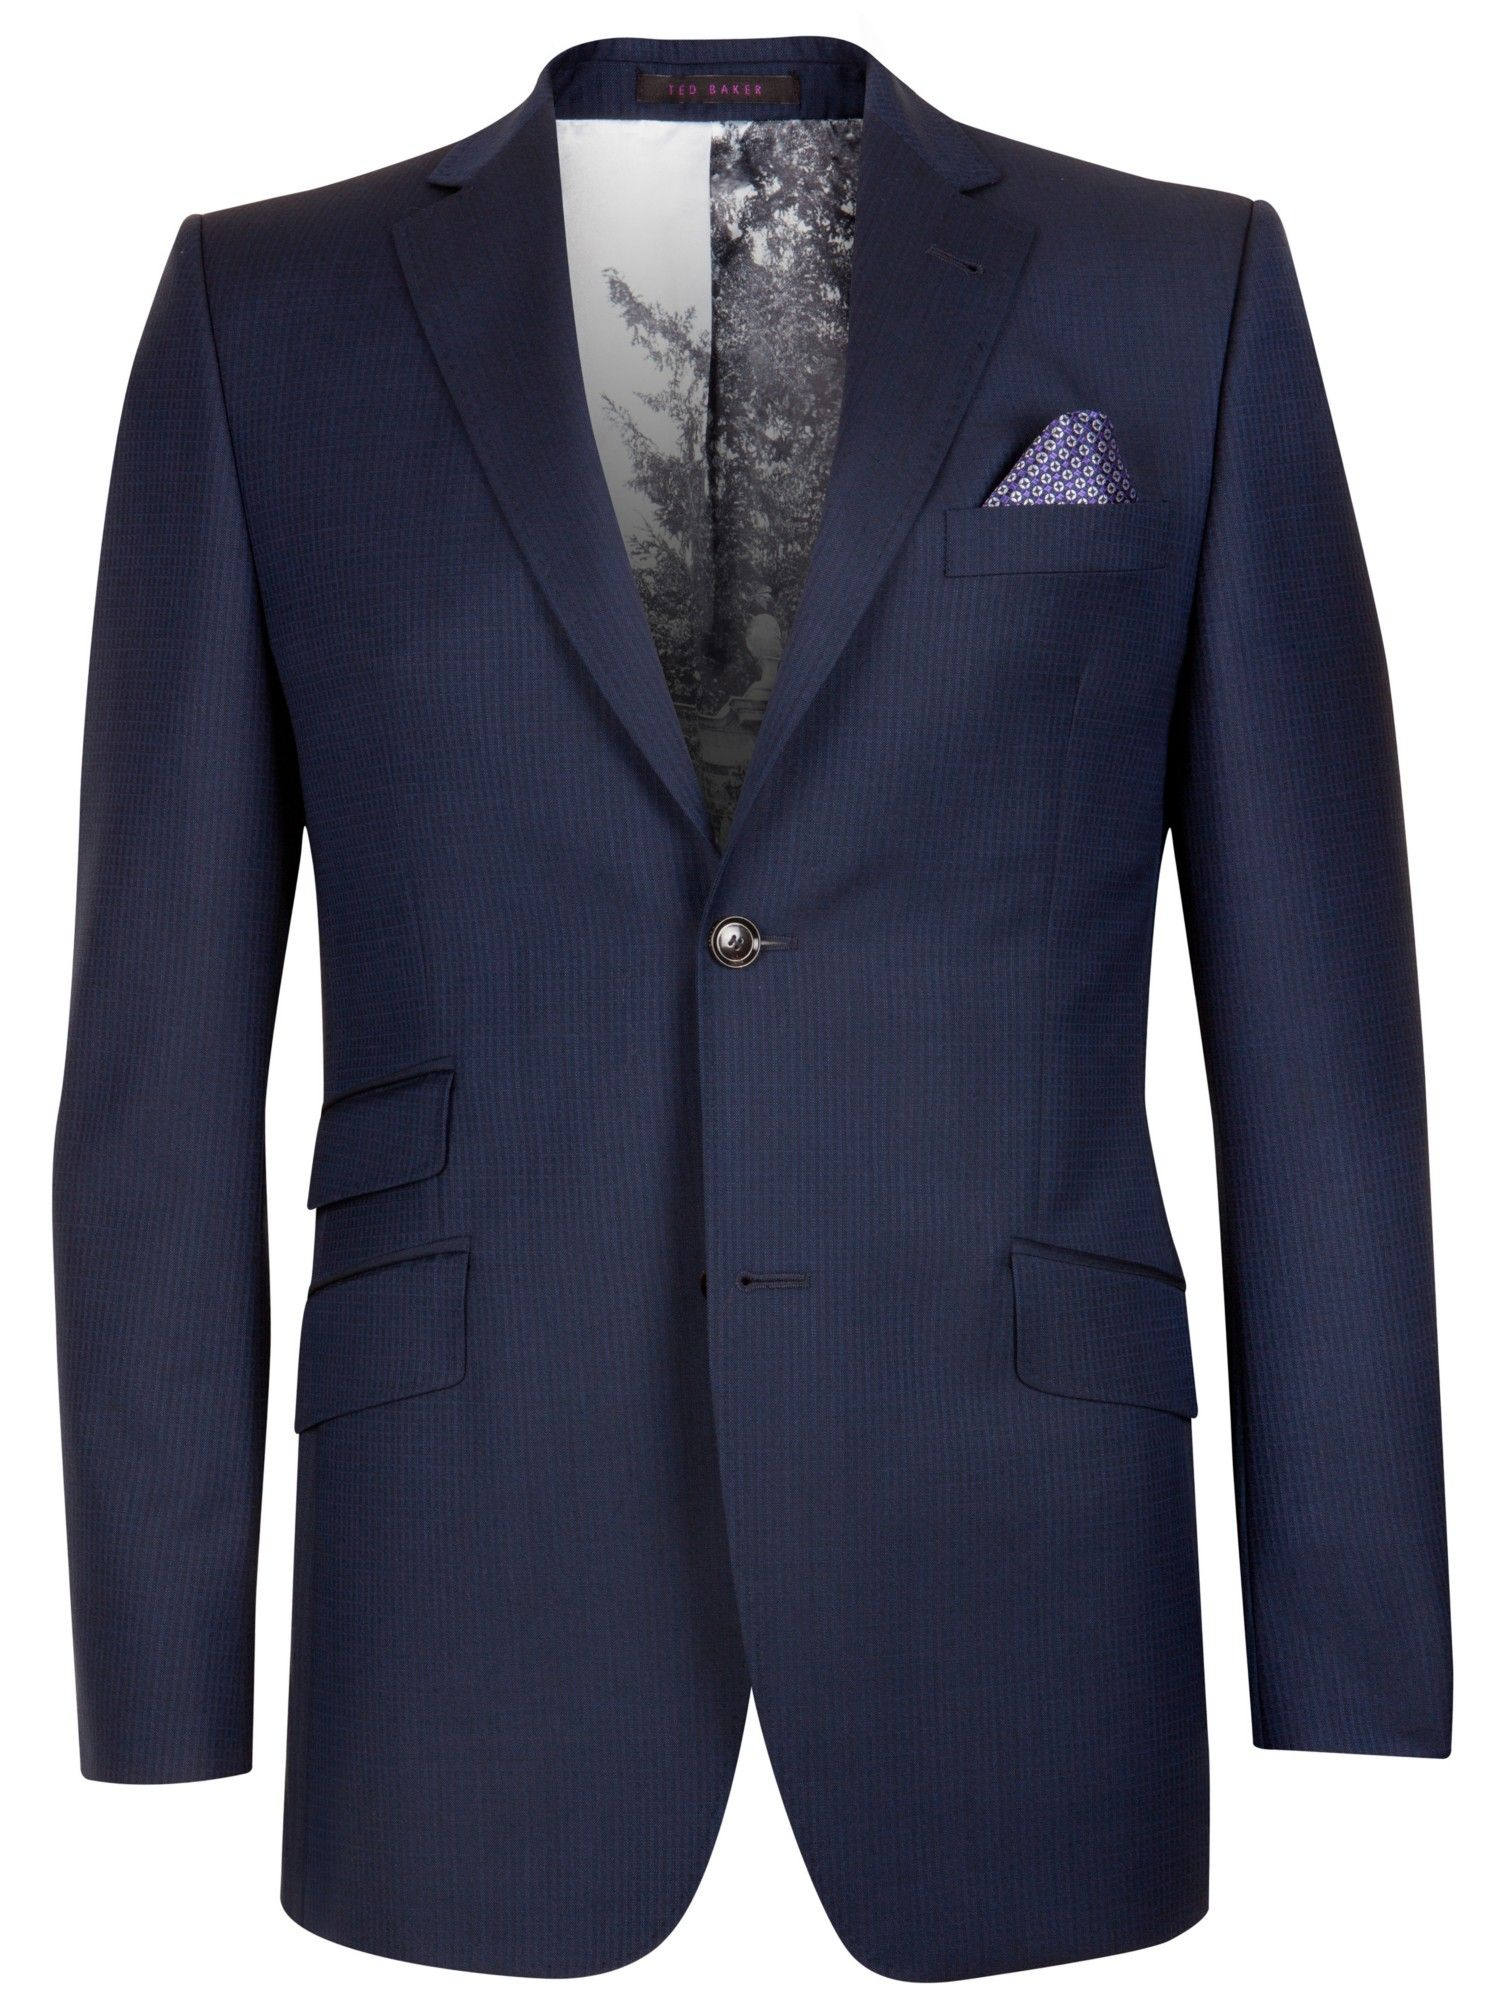 79cce9710985a Ted Baker Endurance Garjak Sterling Wool Suit Jacket